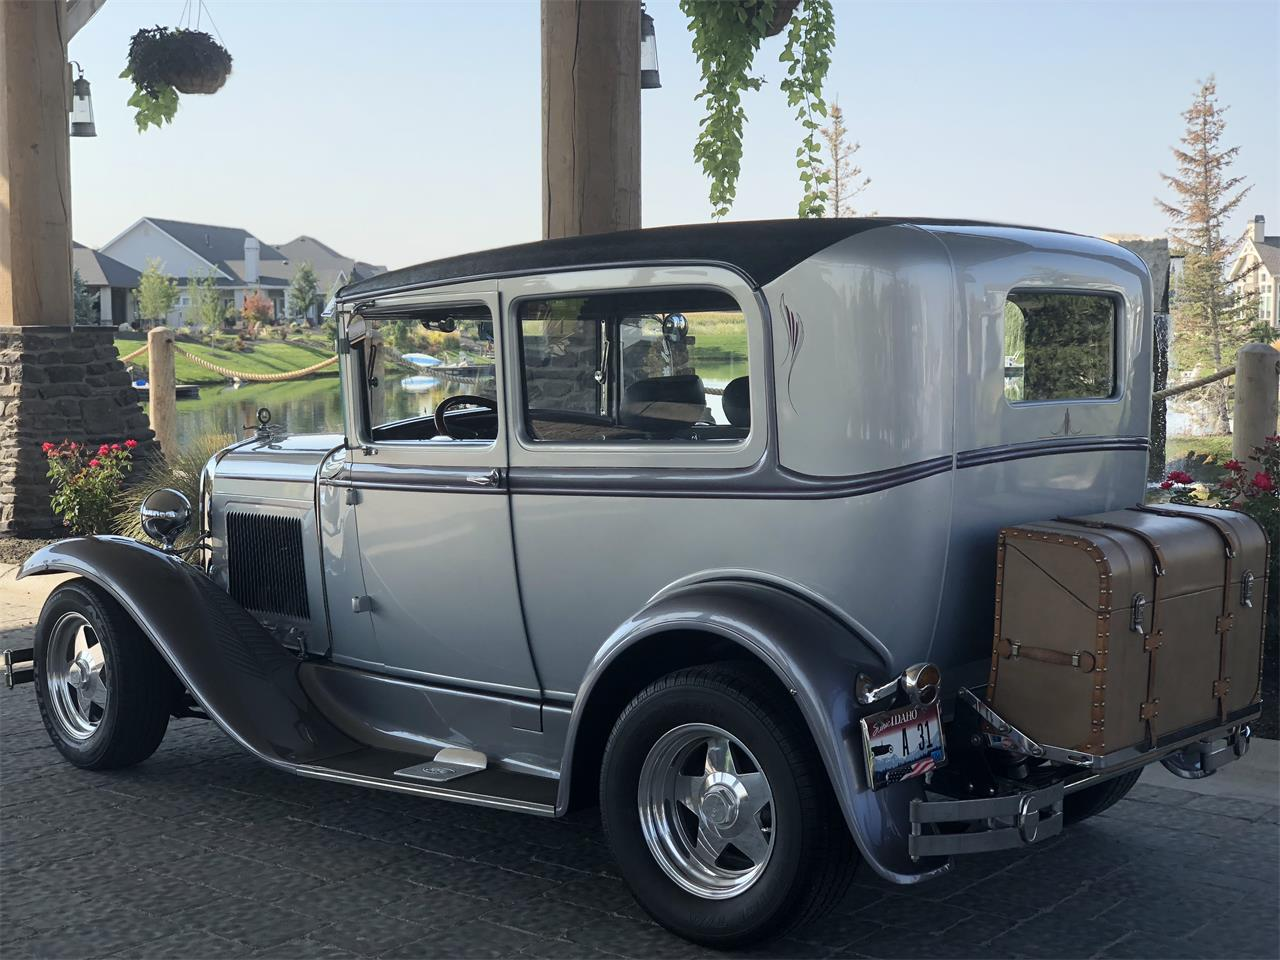 Large Picture of 1931 Ford Model A located in Idaho - $29,900.00 Offered by a Private Seller - P19R